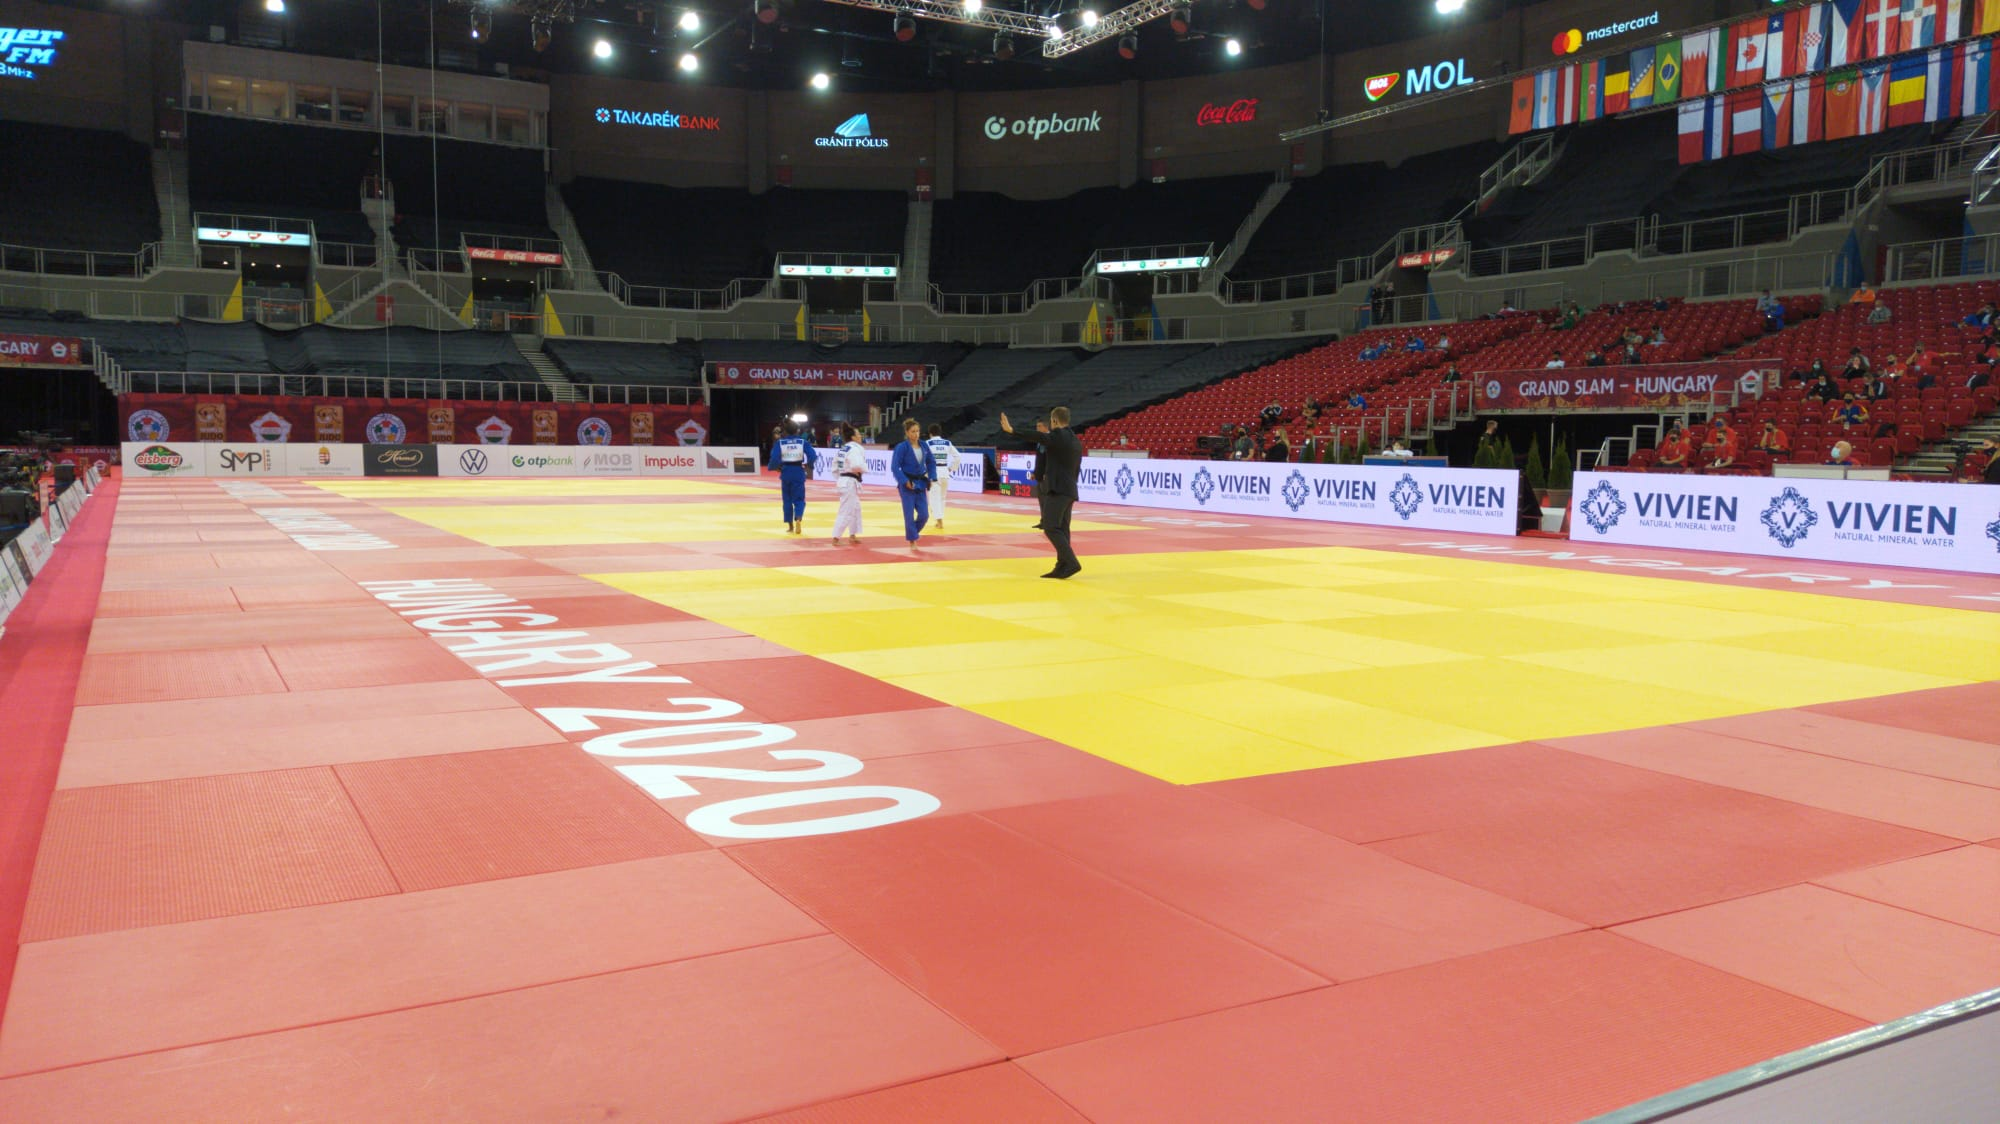 HUNGARY HOSTS THE RETURN OF THE IJF TOUR